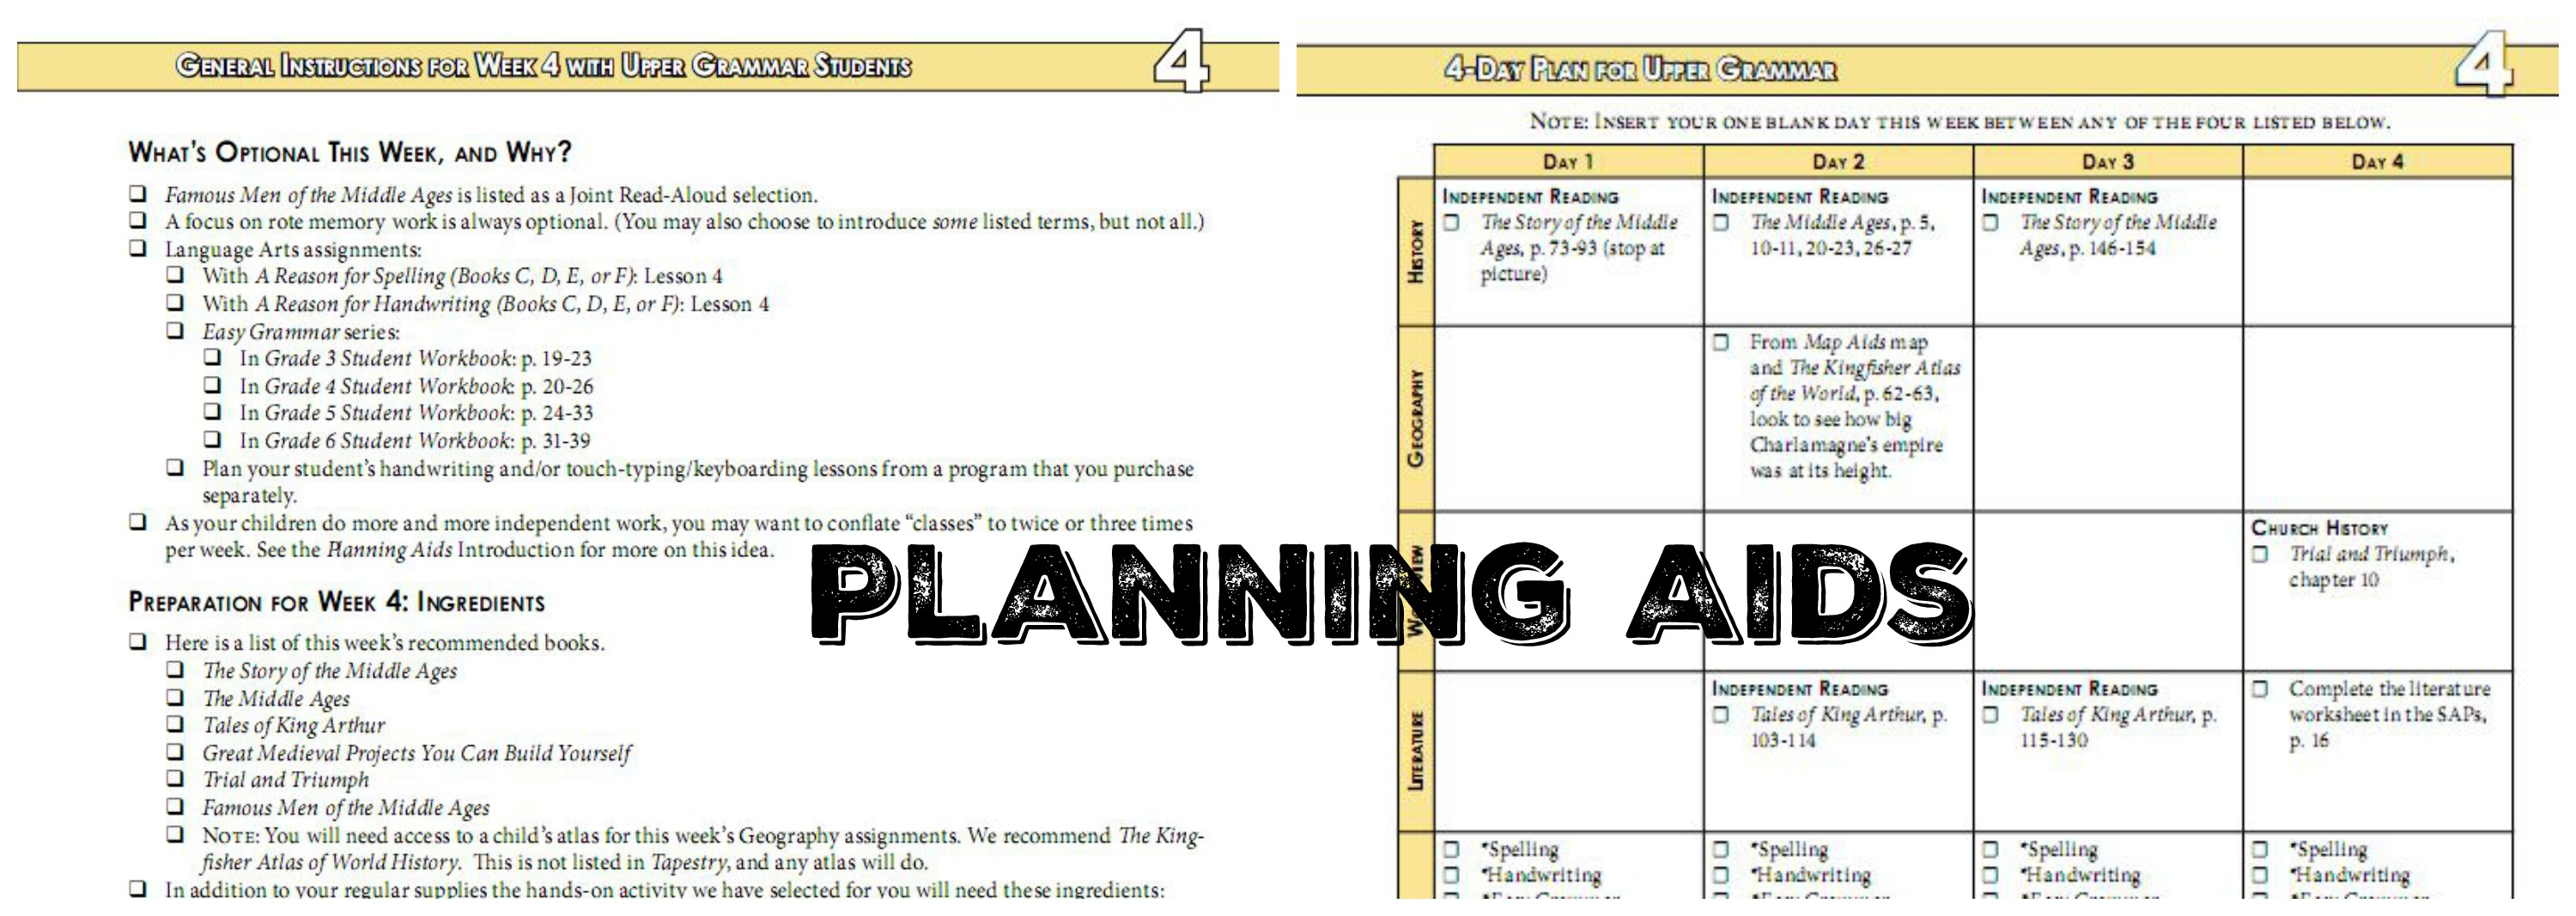 planning aids